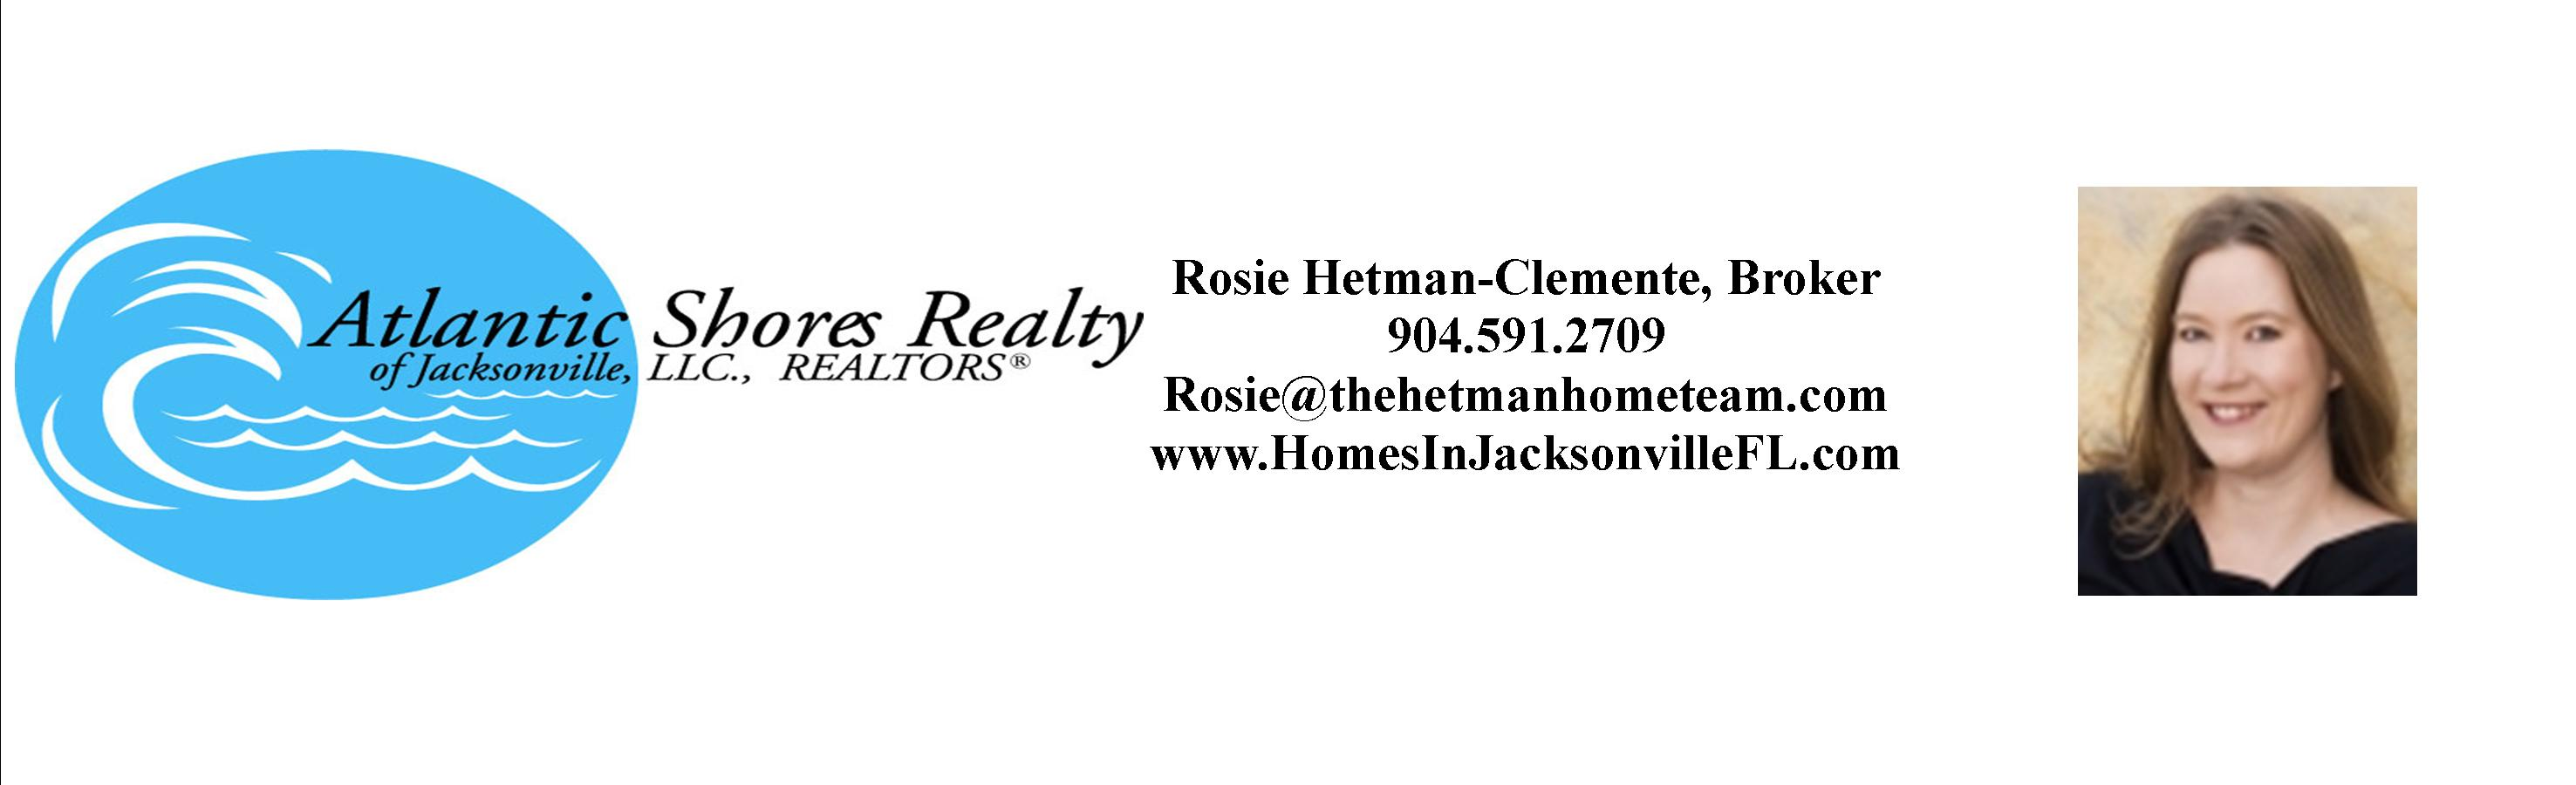 Jacksonville Beach Real Estate Agent